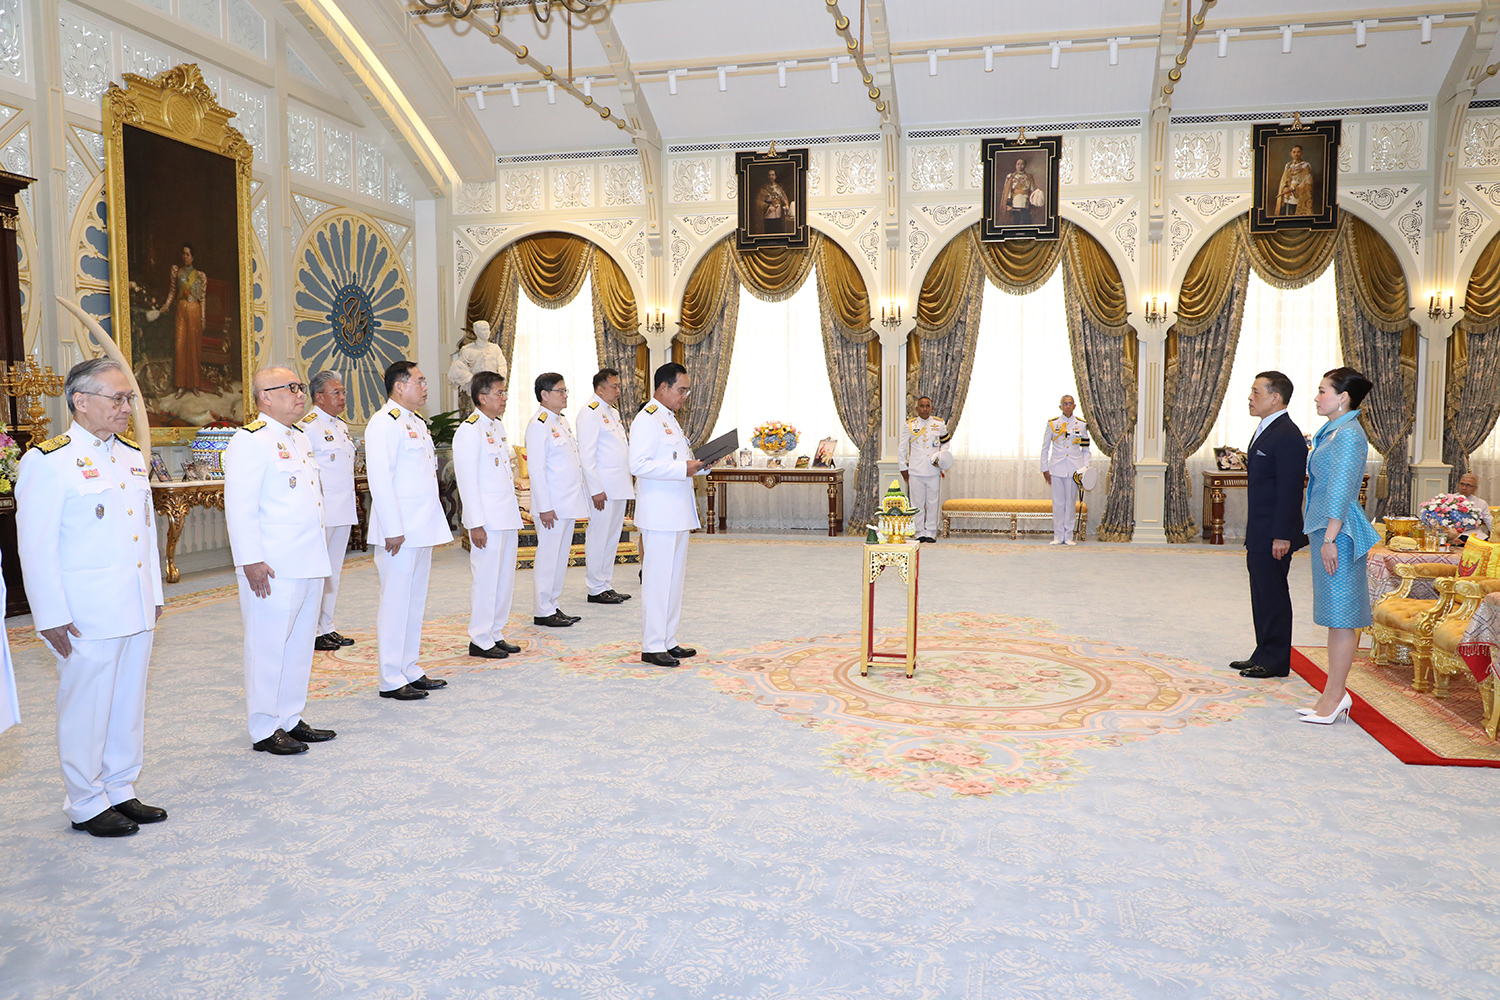 Prime Minister Prayut Chan-o-cha leads the new cabinet ministers and Foreign Minister Don Pramudwinai in reciting the oath of office before Their Majesties the King and Queen at the Ambara Villa in Dusit Palace on Wednesday. (Photo: Royal Household Bureau)